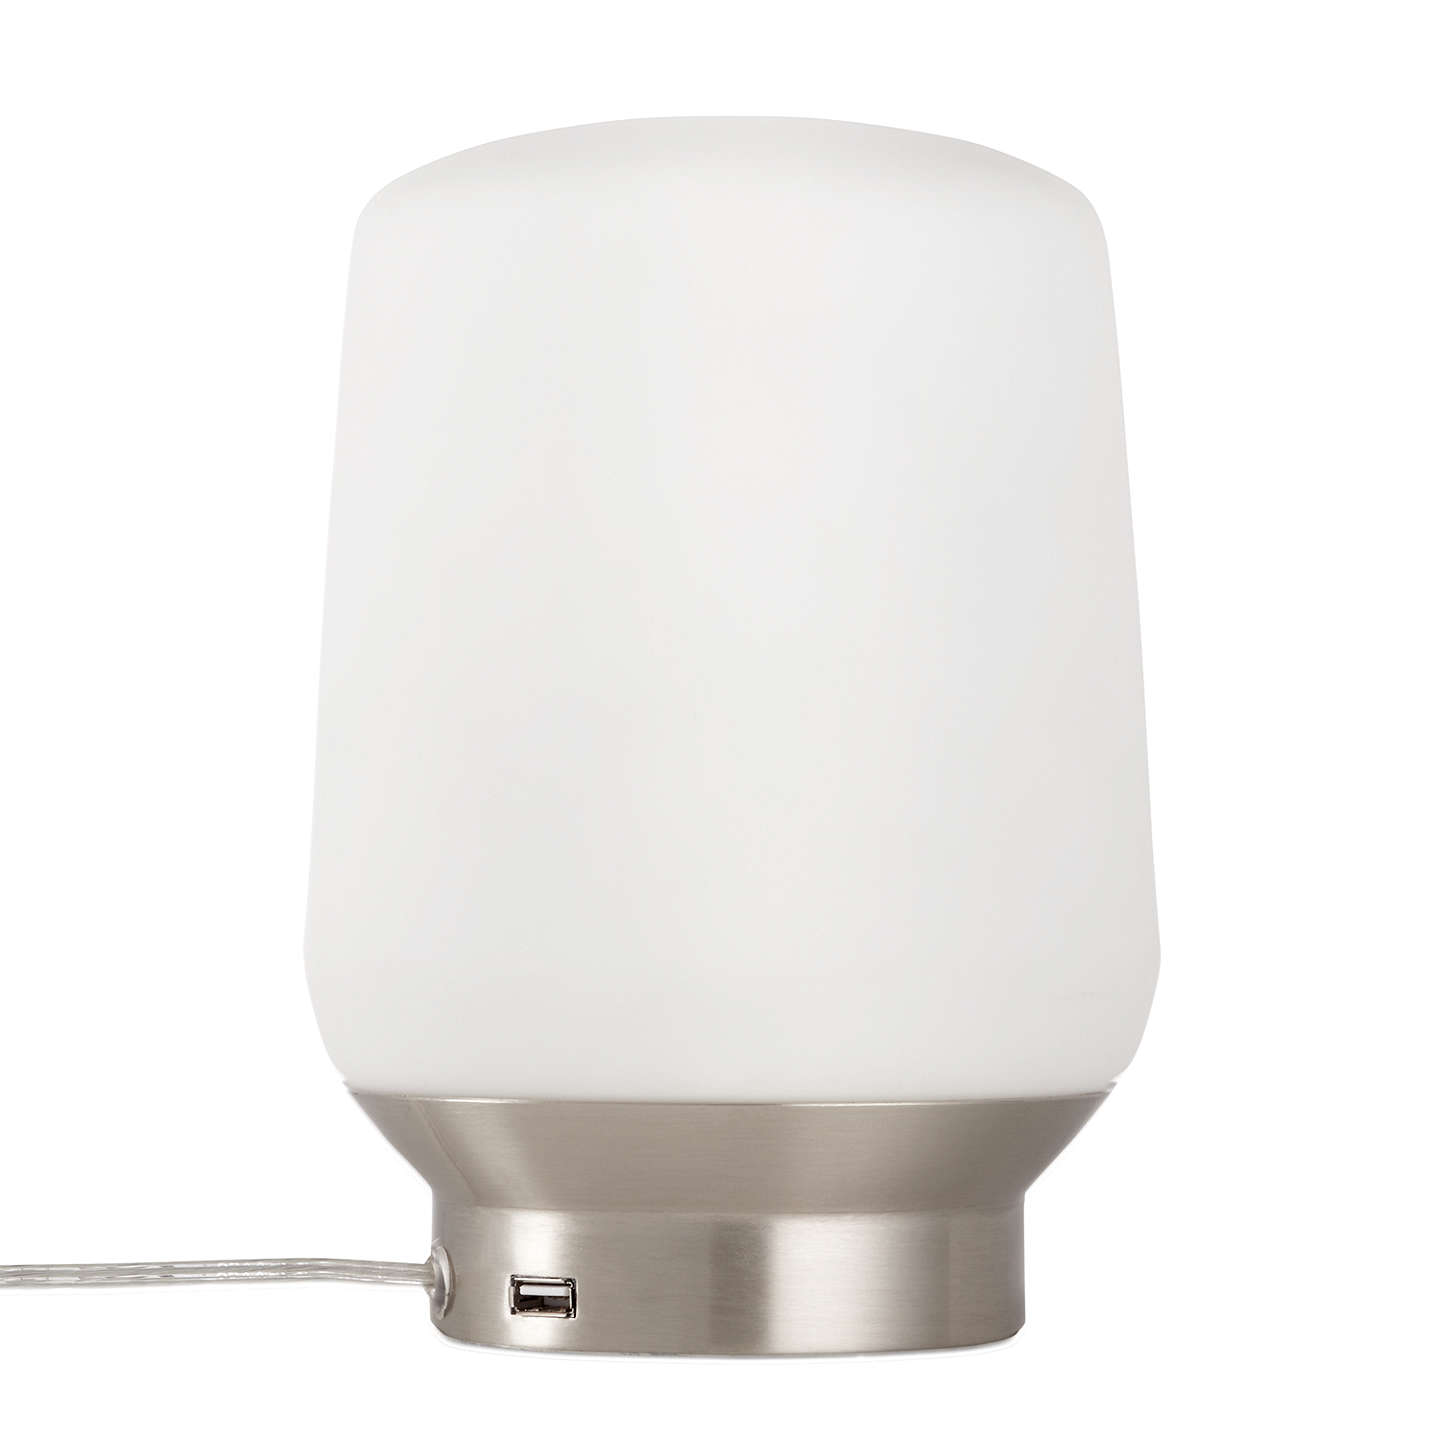 BuyJohn Lewis Stanza USB Charging Touch Lamp, Satin Nickel Online at johnlewis.com